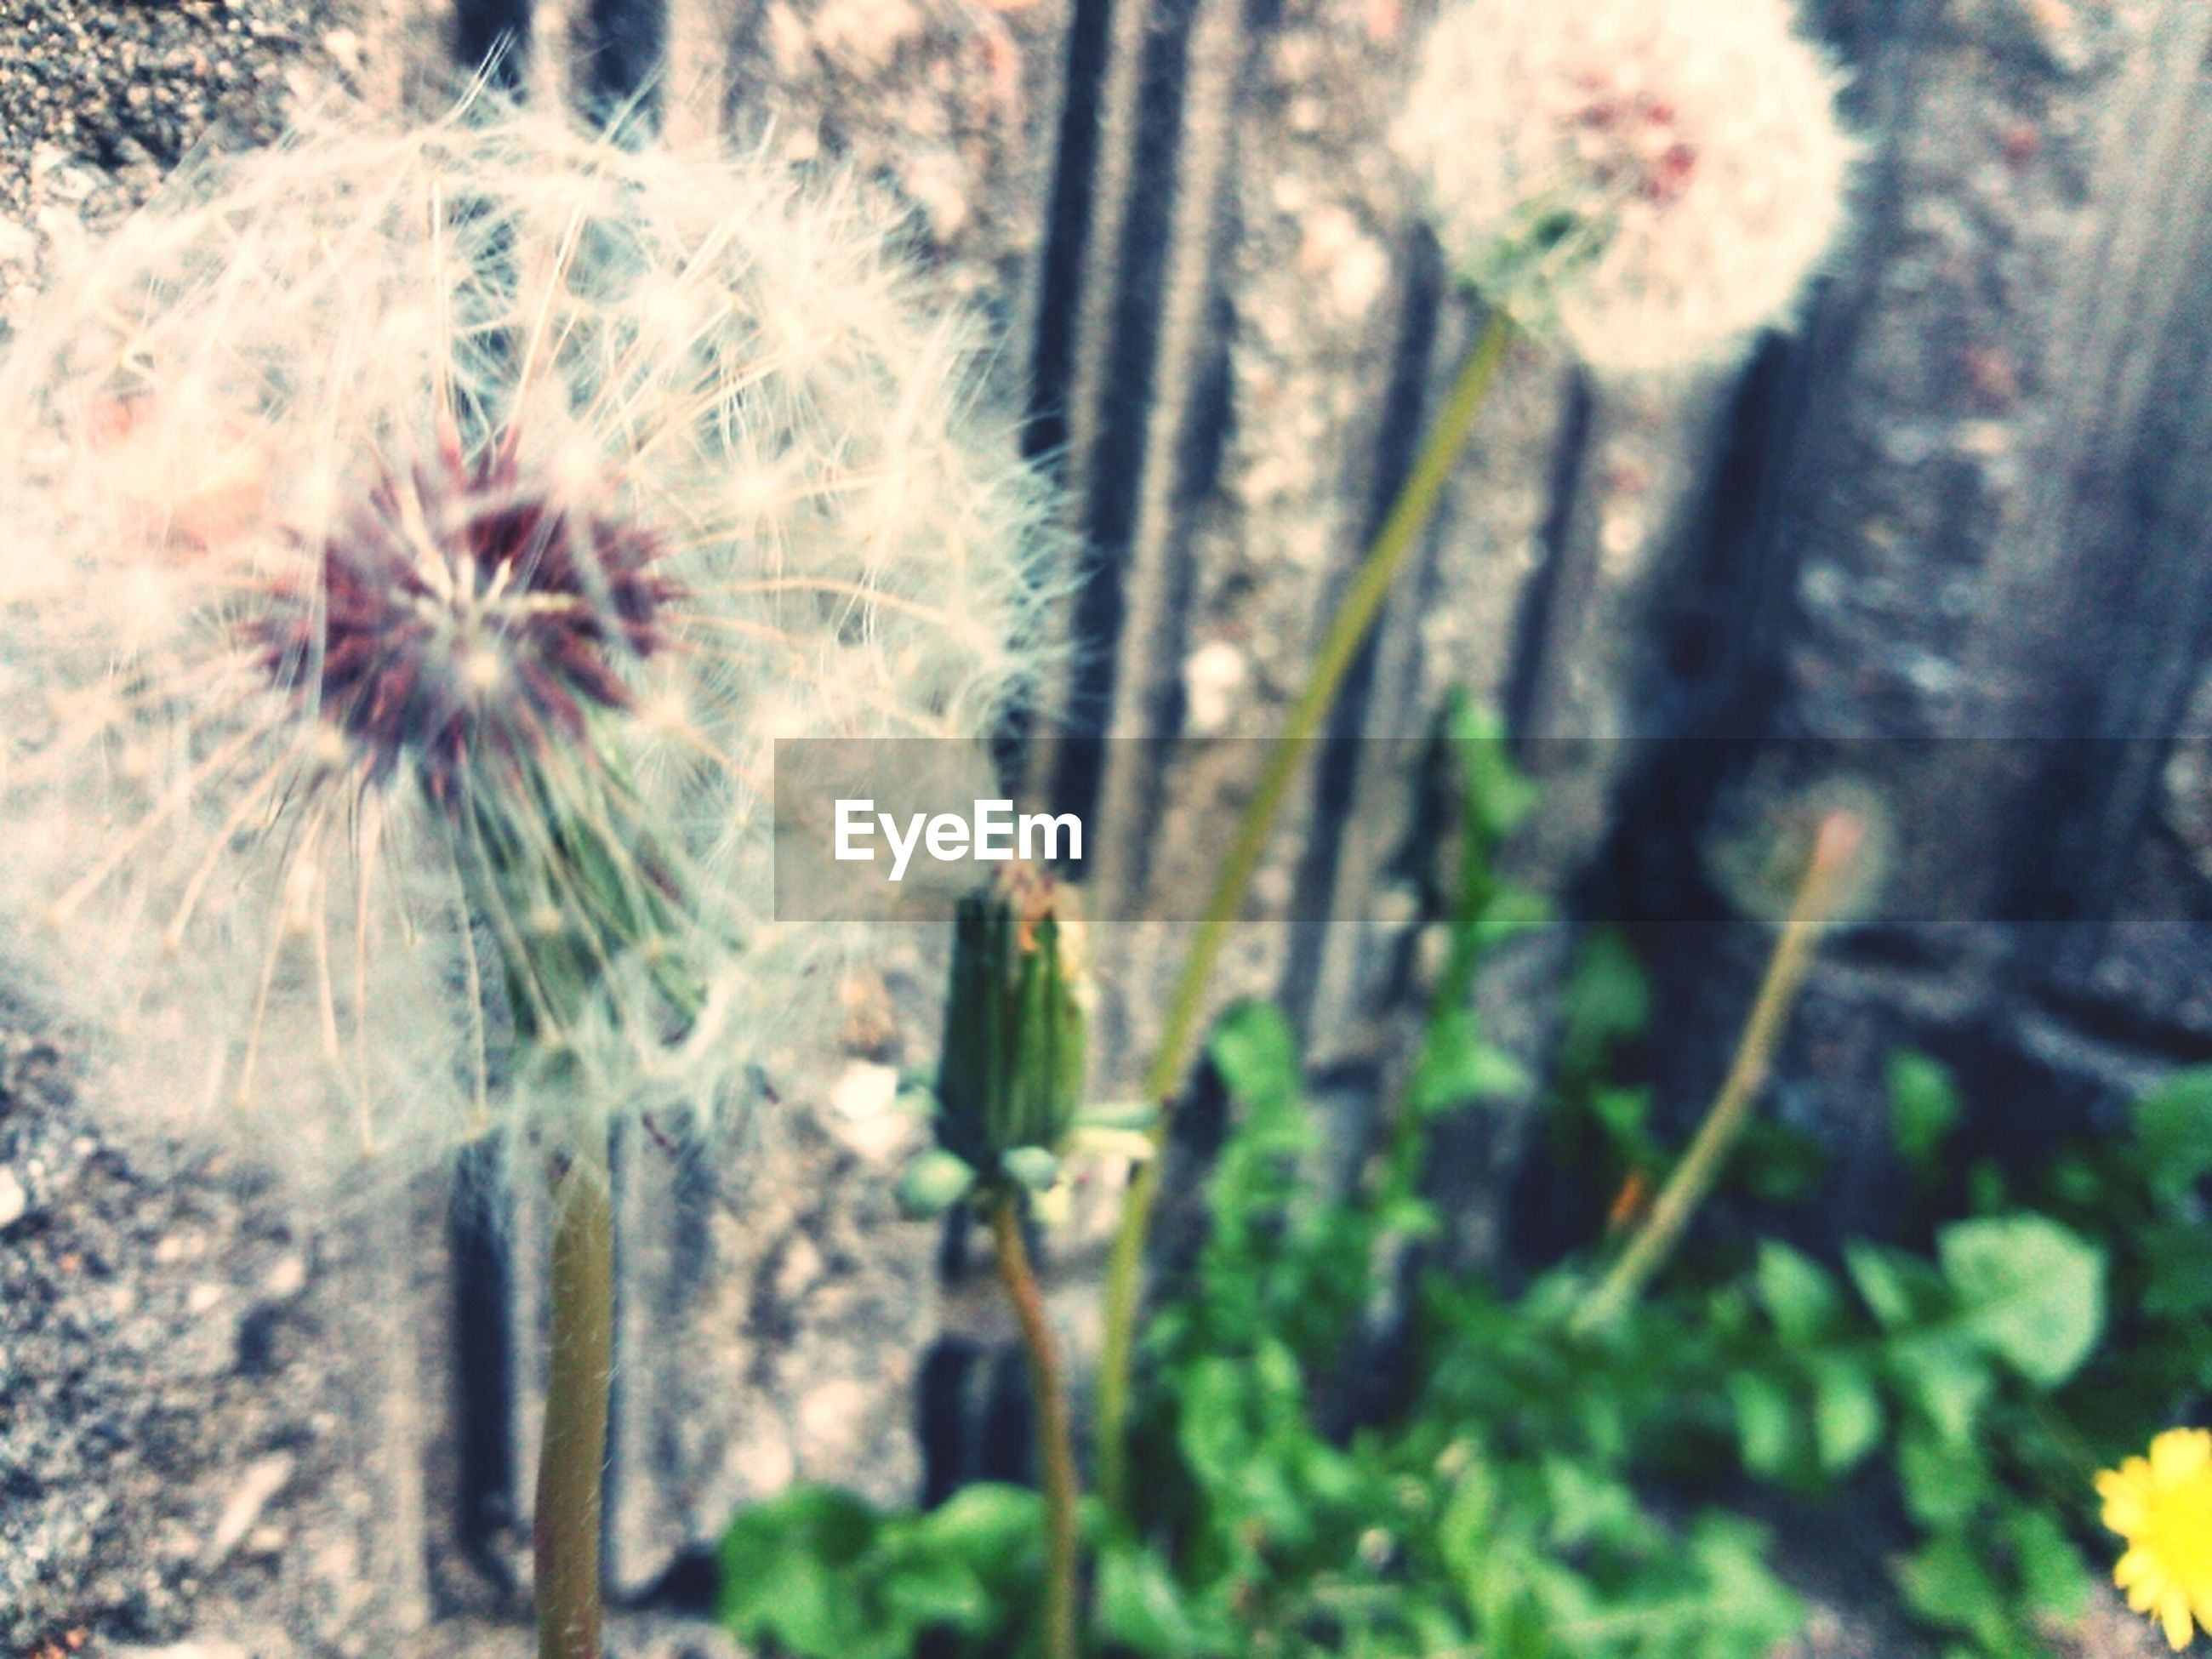 flower, growth, fragility, freshness, dandelion, close-up, plant, nature, focus on foreground, beauty in nature, flower head, stem, selective focus, wildflower, uncultivated, botany, blooming, day, in bloom, outdoors